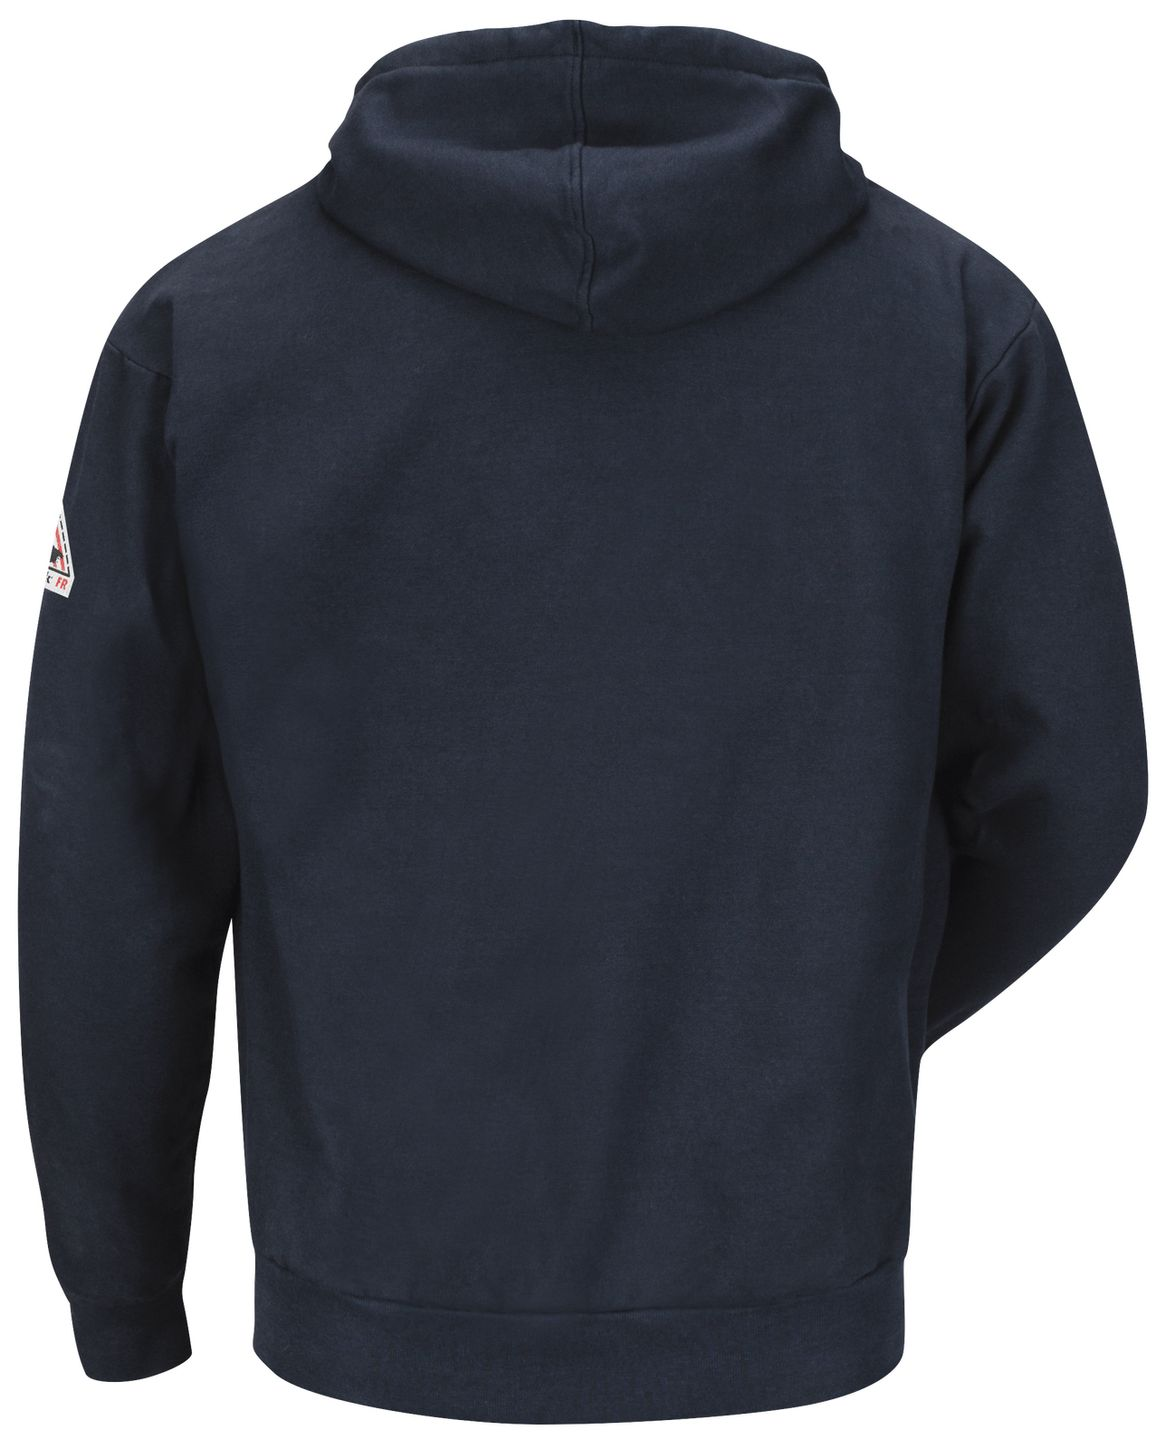 bulwark-fr-sweatshirt-seh4-hooded-fleece-zip-front-navy-back.jpg